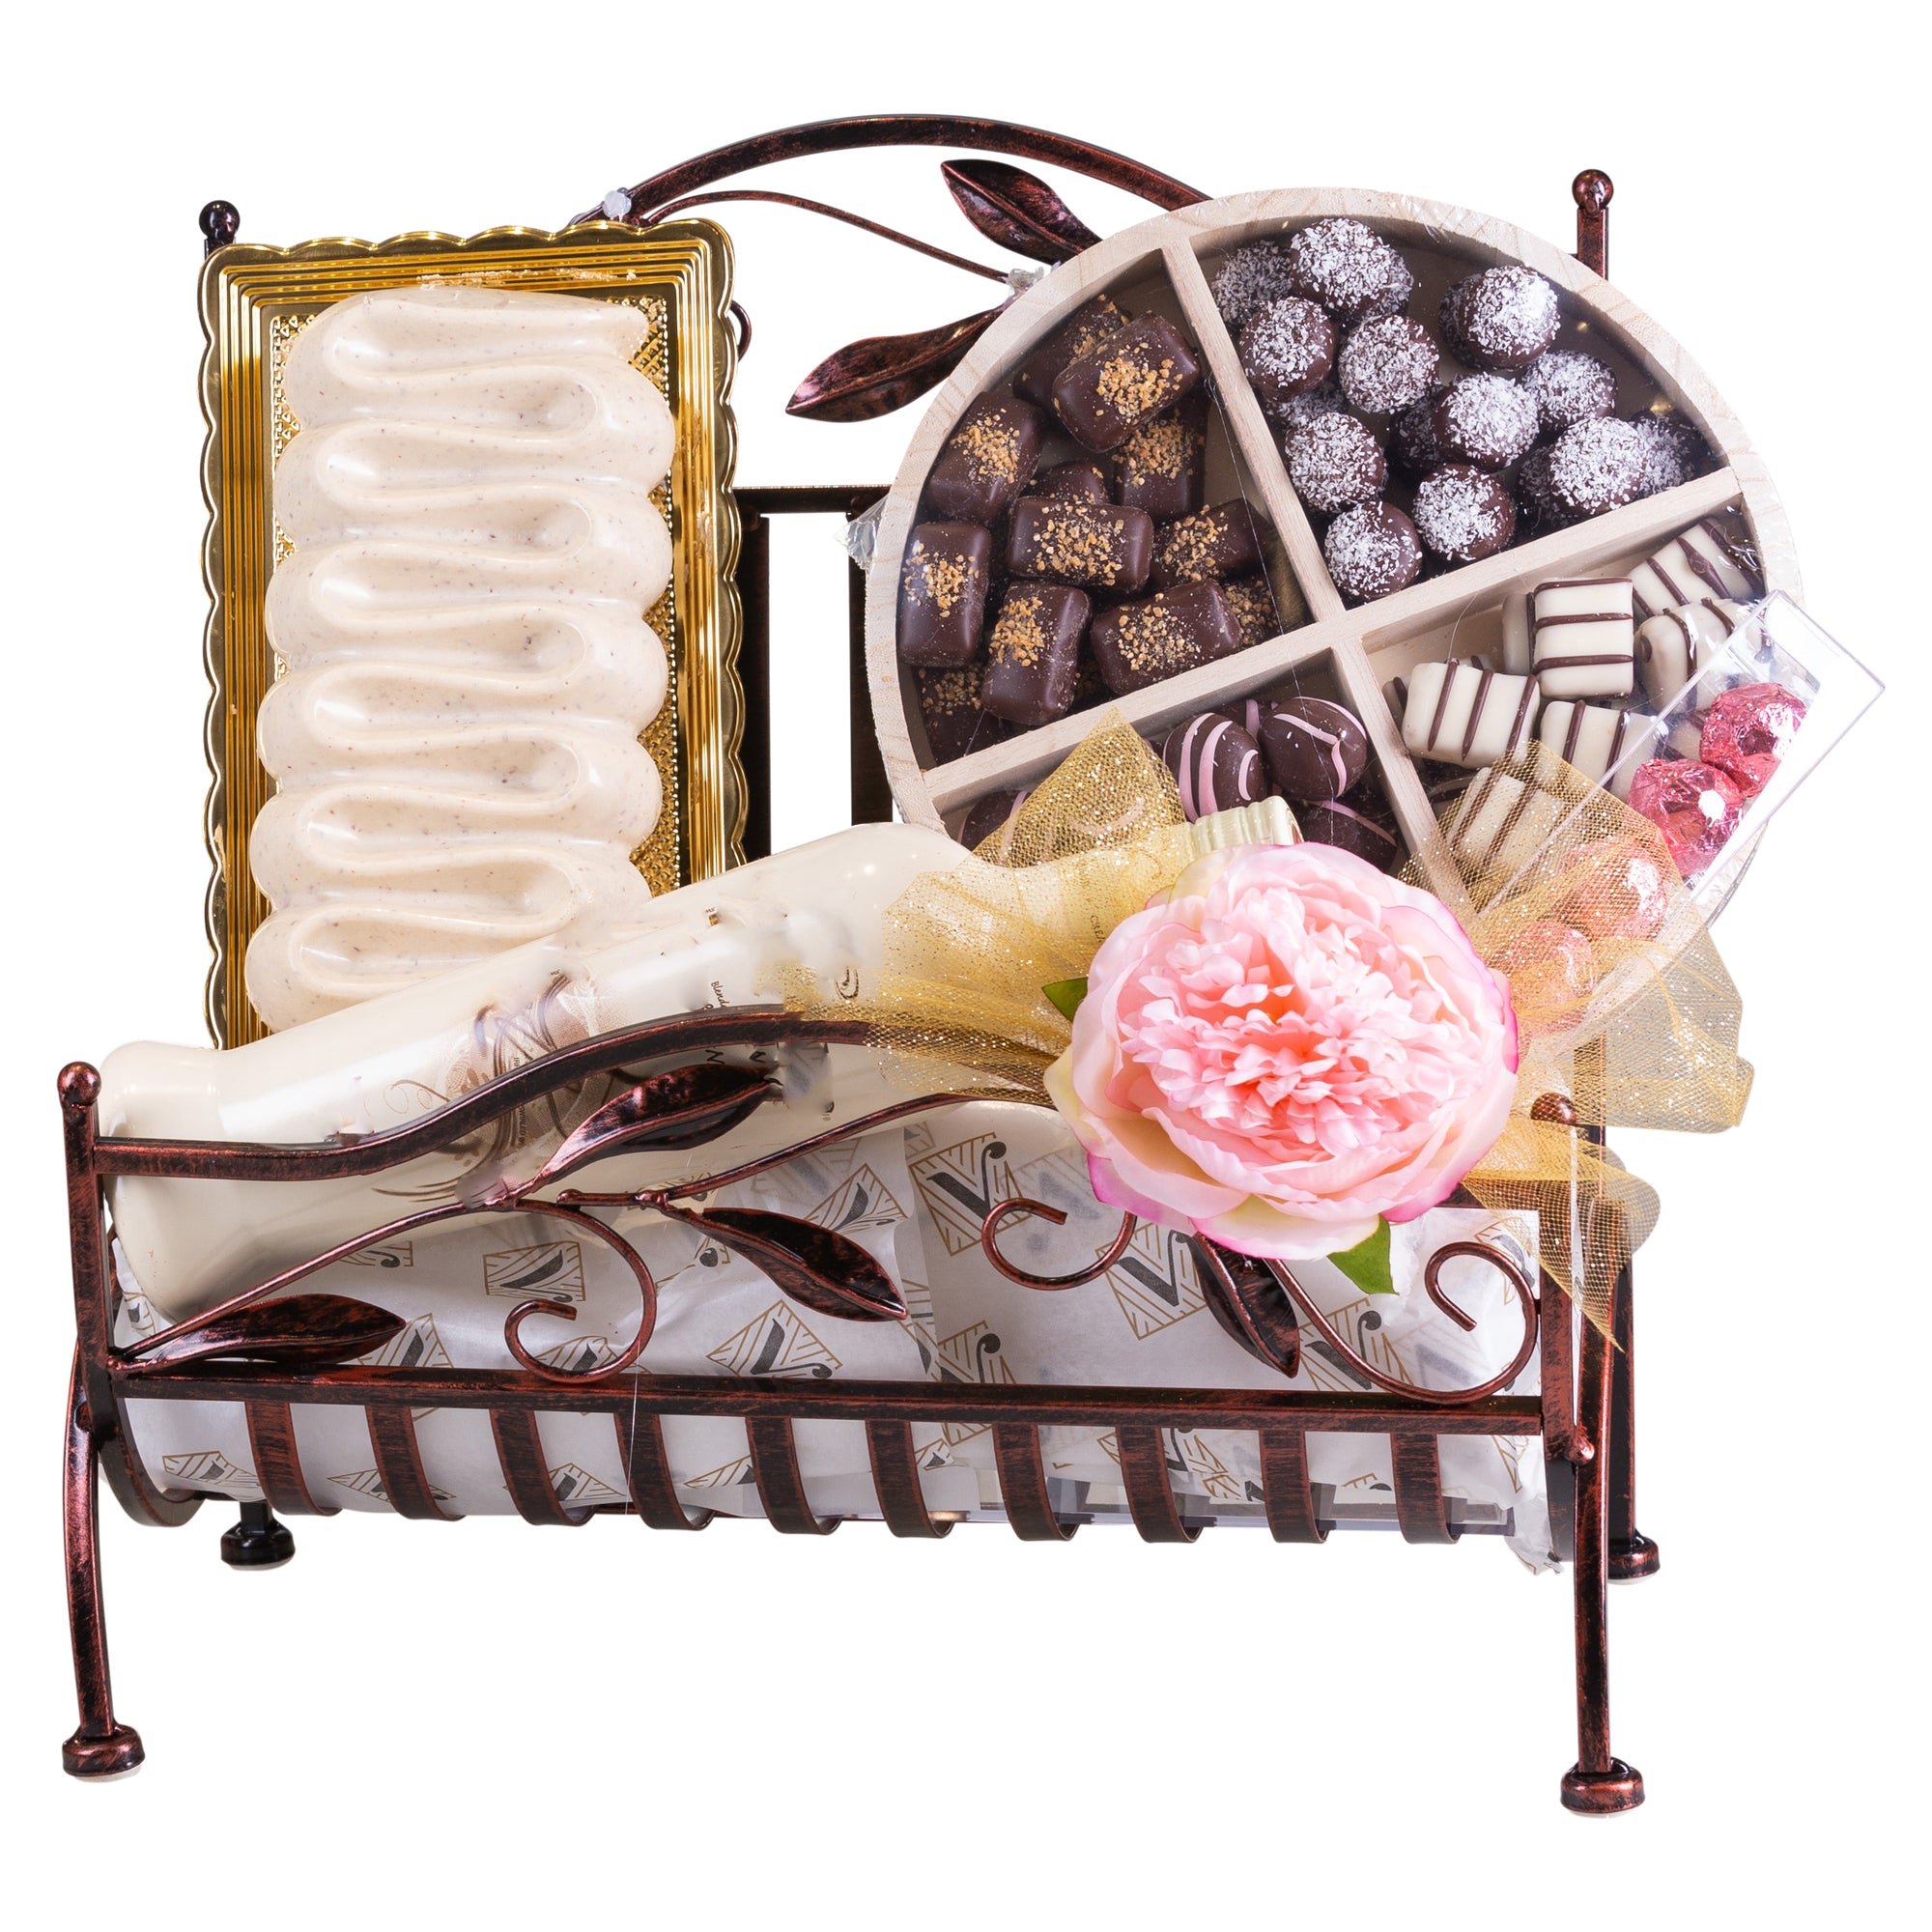 Purim Gift Mishloach Manos Chocolate Mega Rack